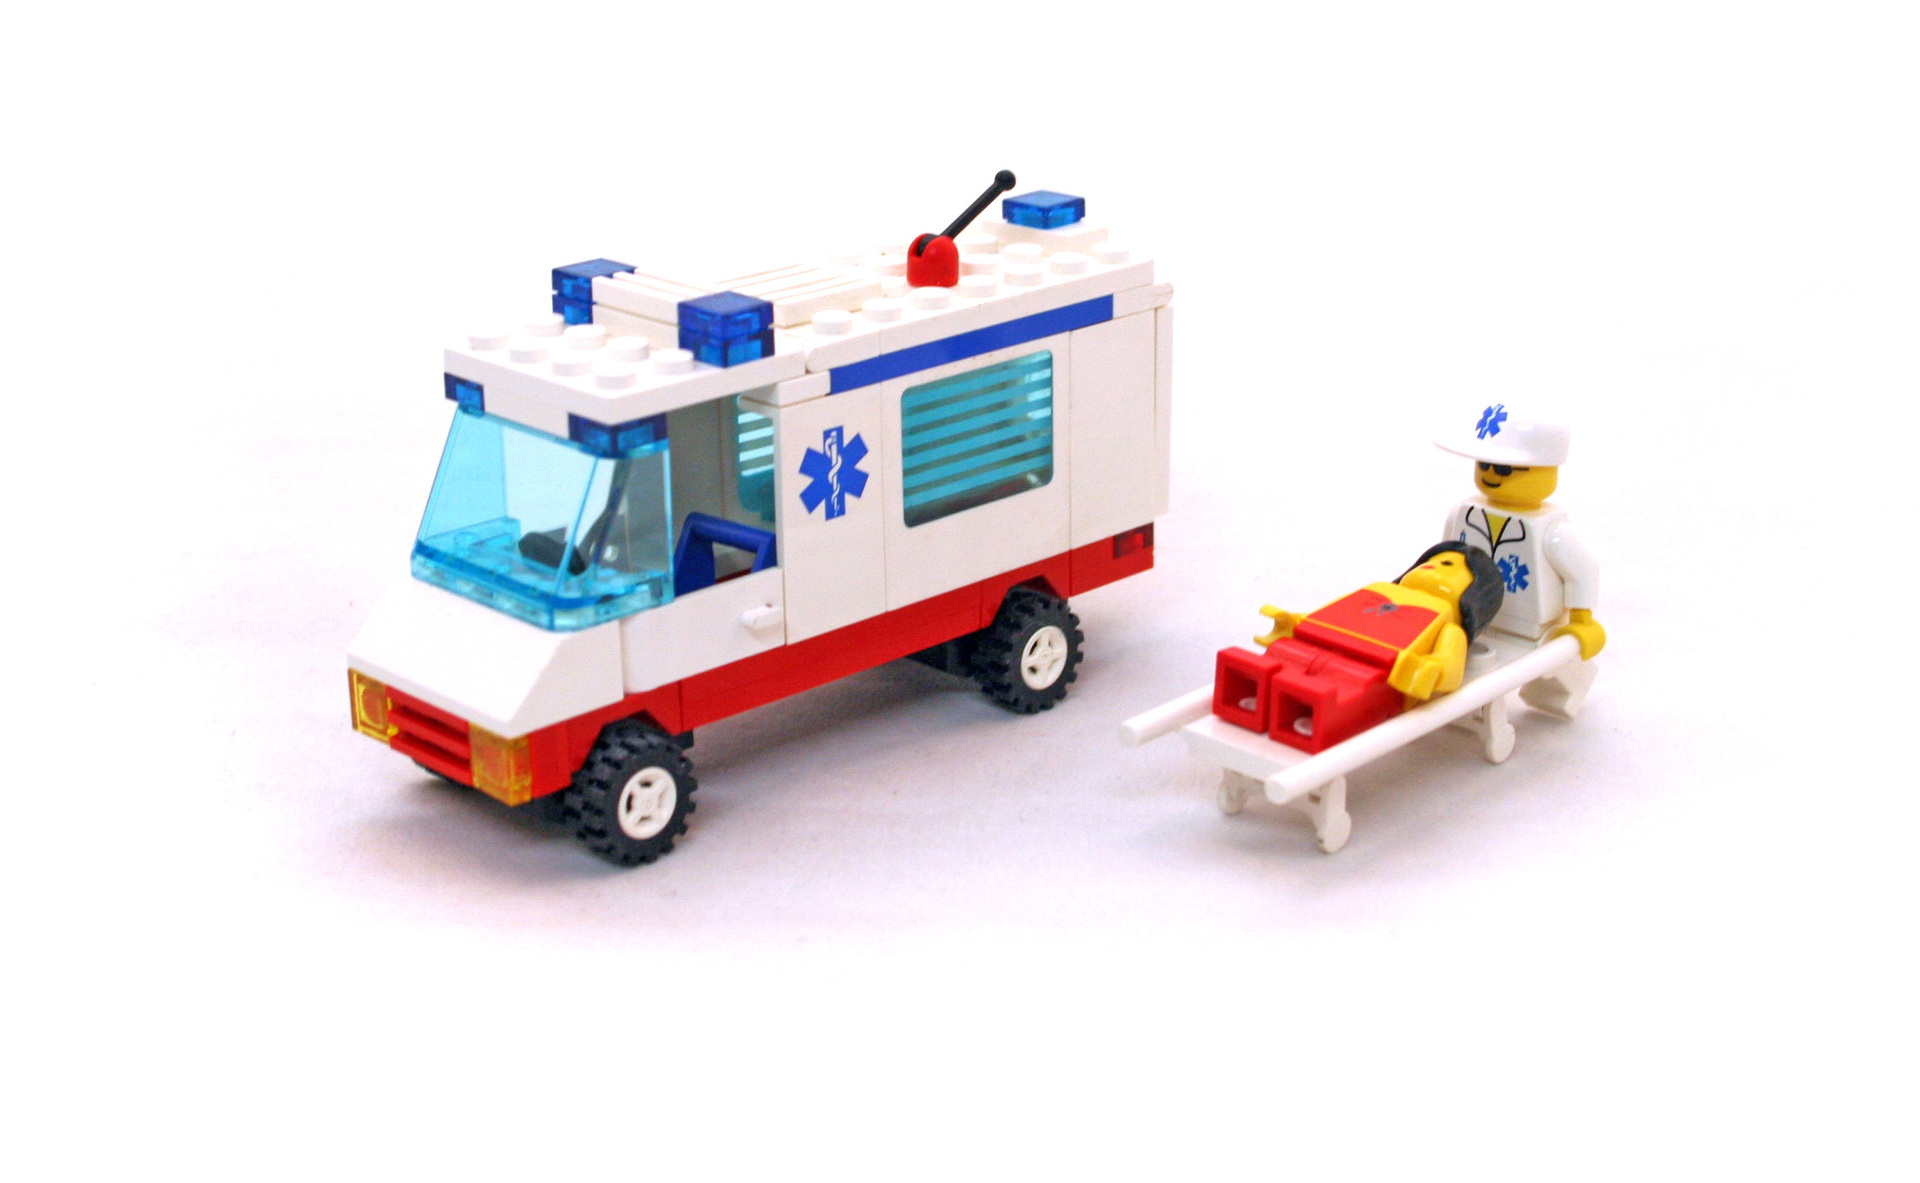 Ambulance lego set 6666 1 building sets - Lego ambulance ...